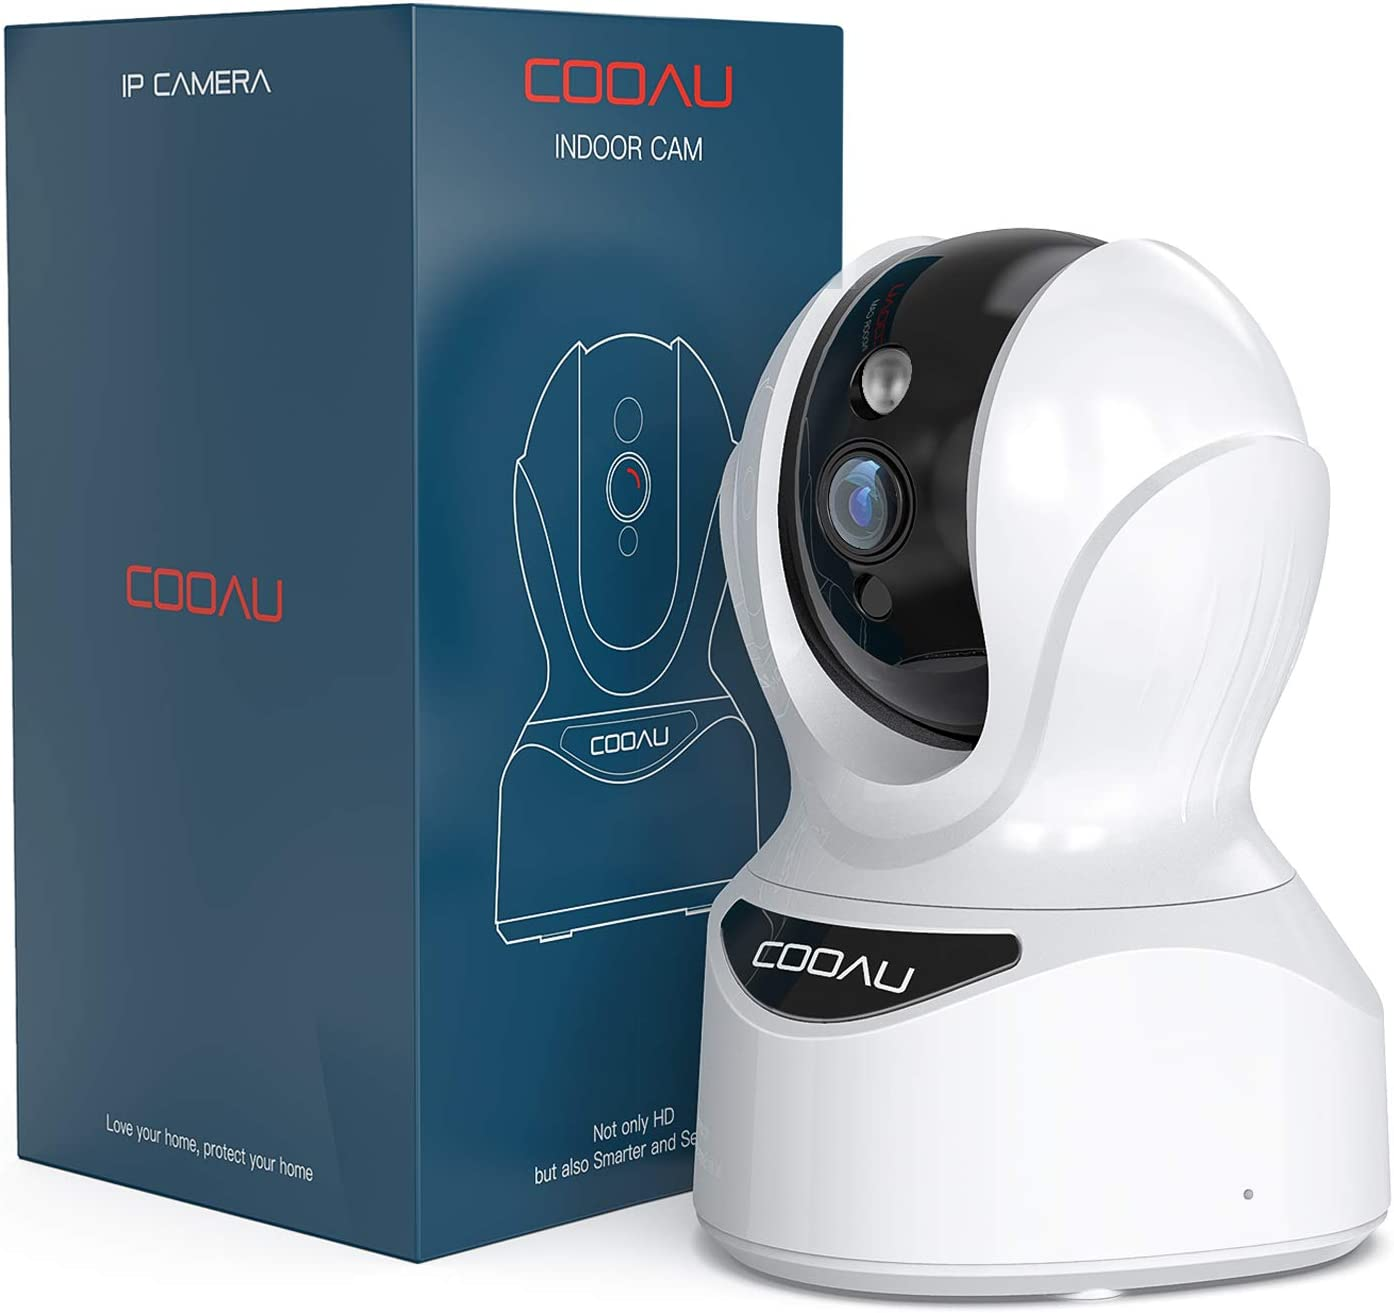 Security Camera Indoor, COOAU 1080P Wireless Pet Camera, WiFi Home IP Camera for Dog/Nanny/Elder/Baby, with Sound Detection, Motion Tracking, Two-Way Audio, Works with Alexa, Cloud/SD Storage